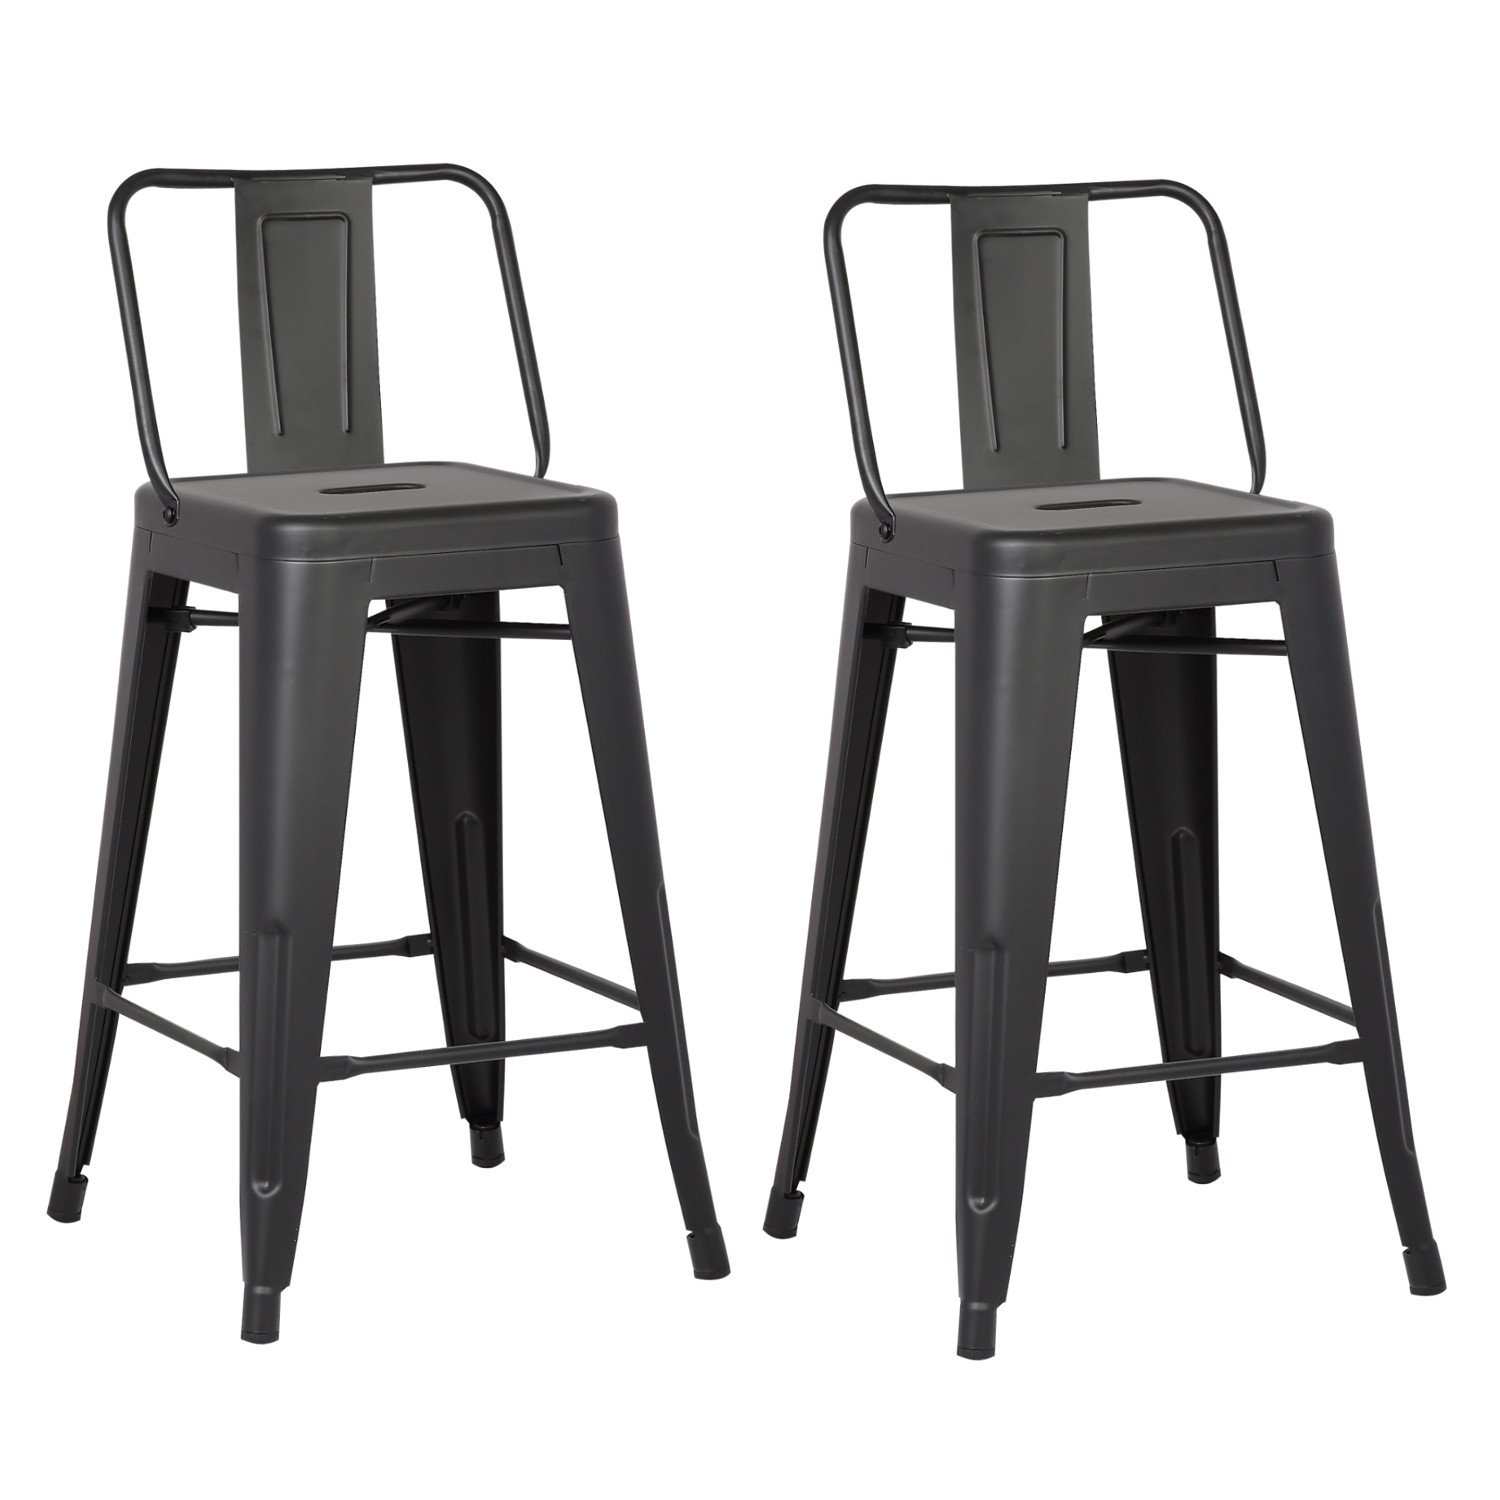 AC Pacific Modern Industrial Metal Barstool with Bucket Back and 4 Leg Design, 24'' Seat Bar Stools (Set of 2), Matte Black Finish by AC Pacific